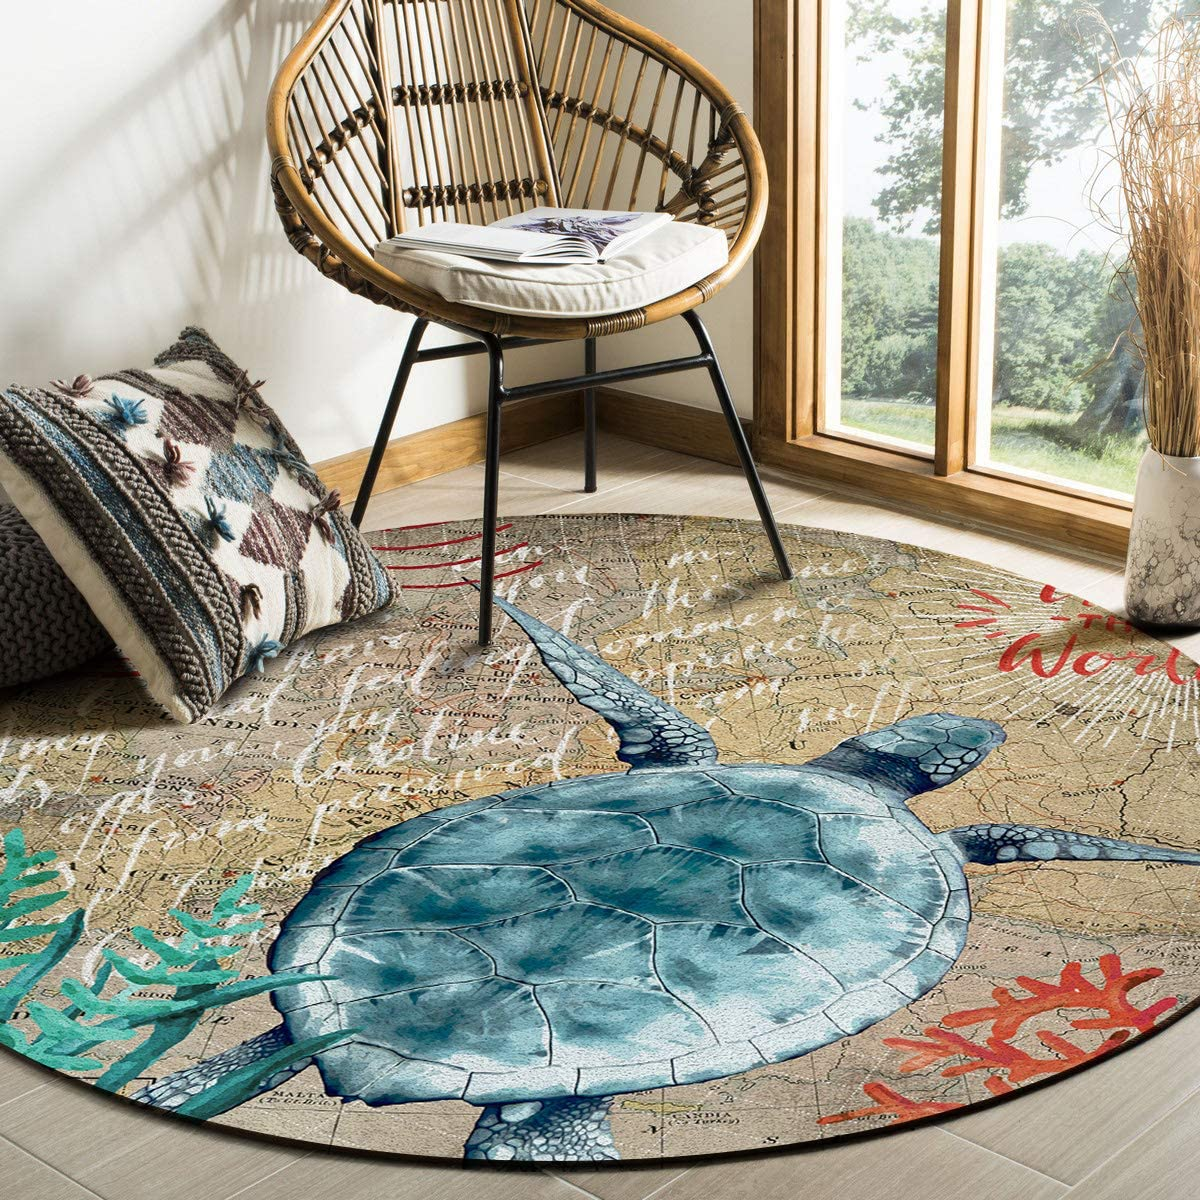 Ocean Theme Area Rug Round Rugs Turtle 6ft Collect Nautical Sea All items in the store Price reduction